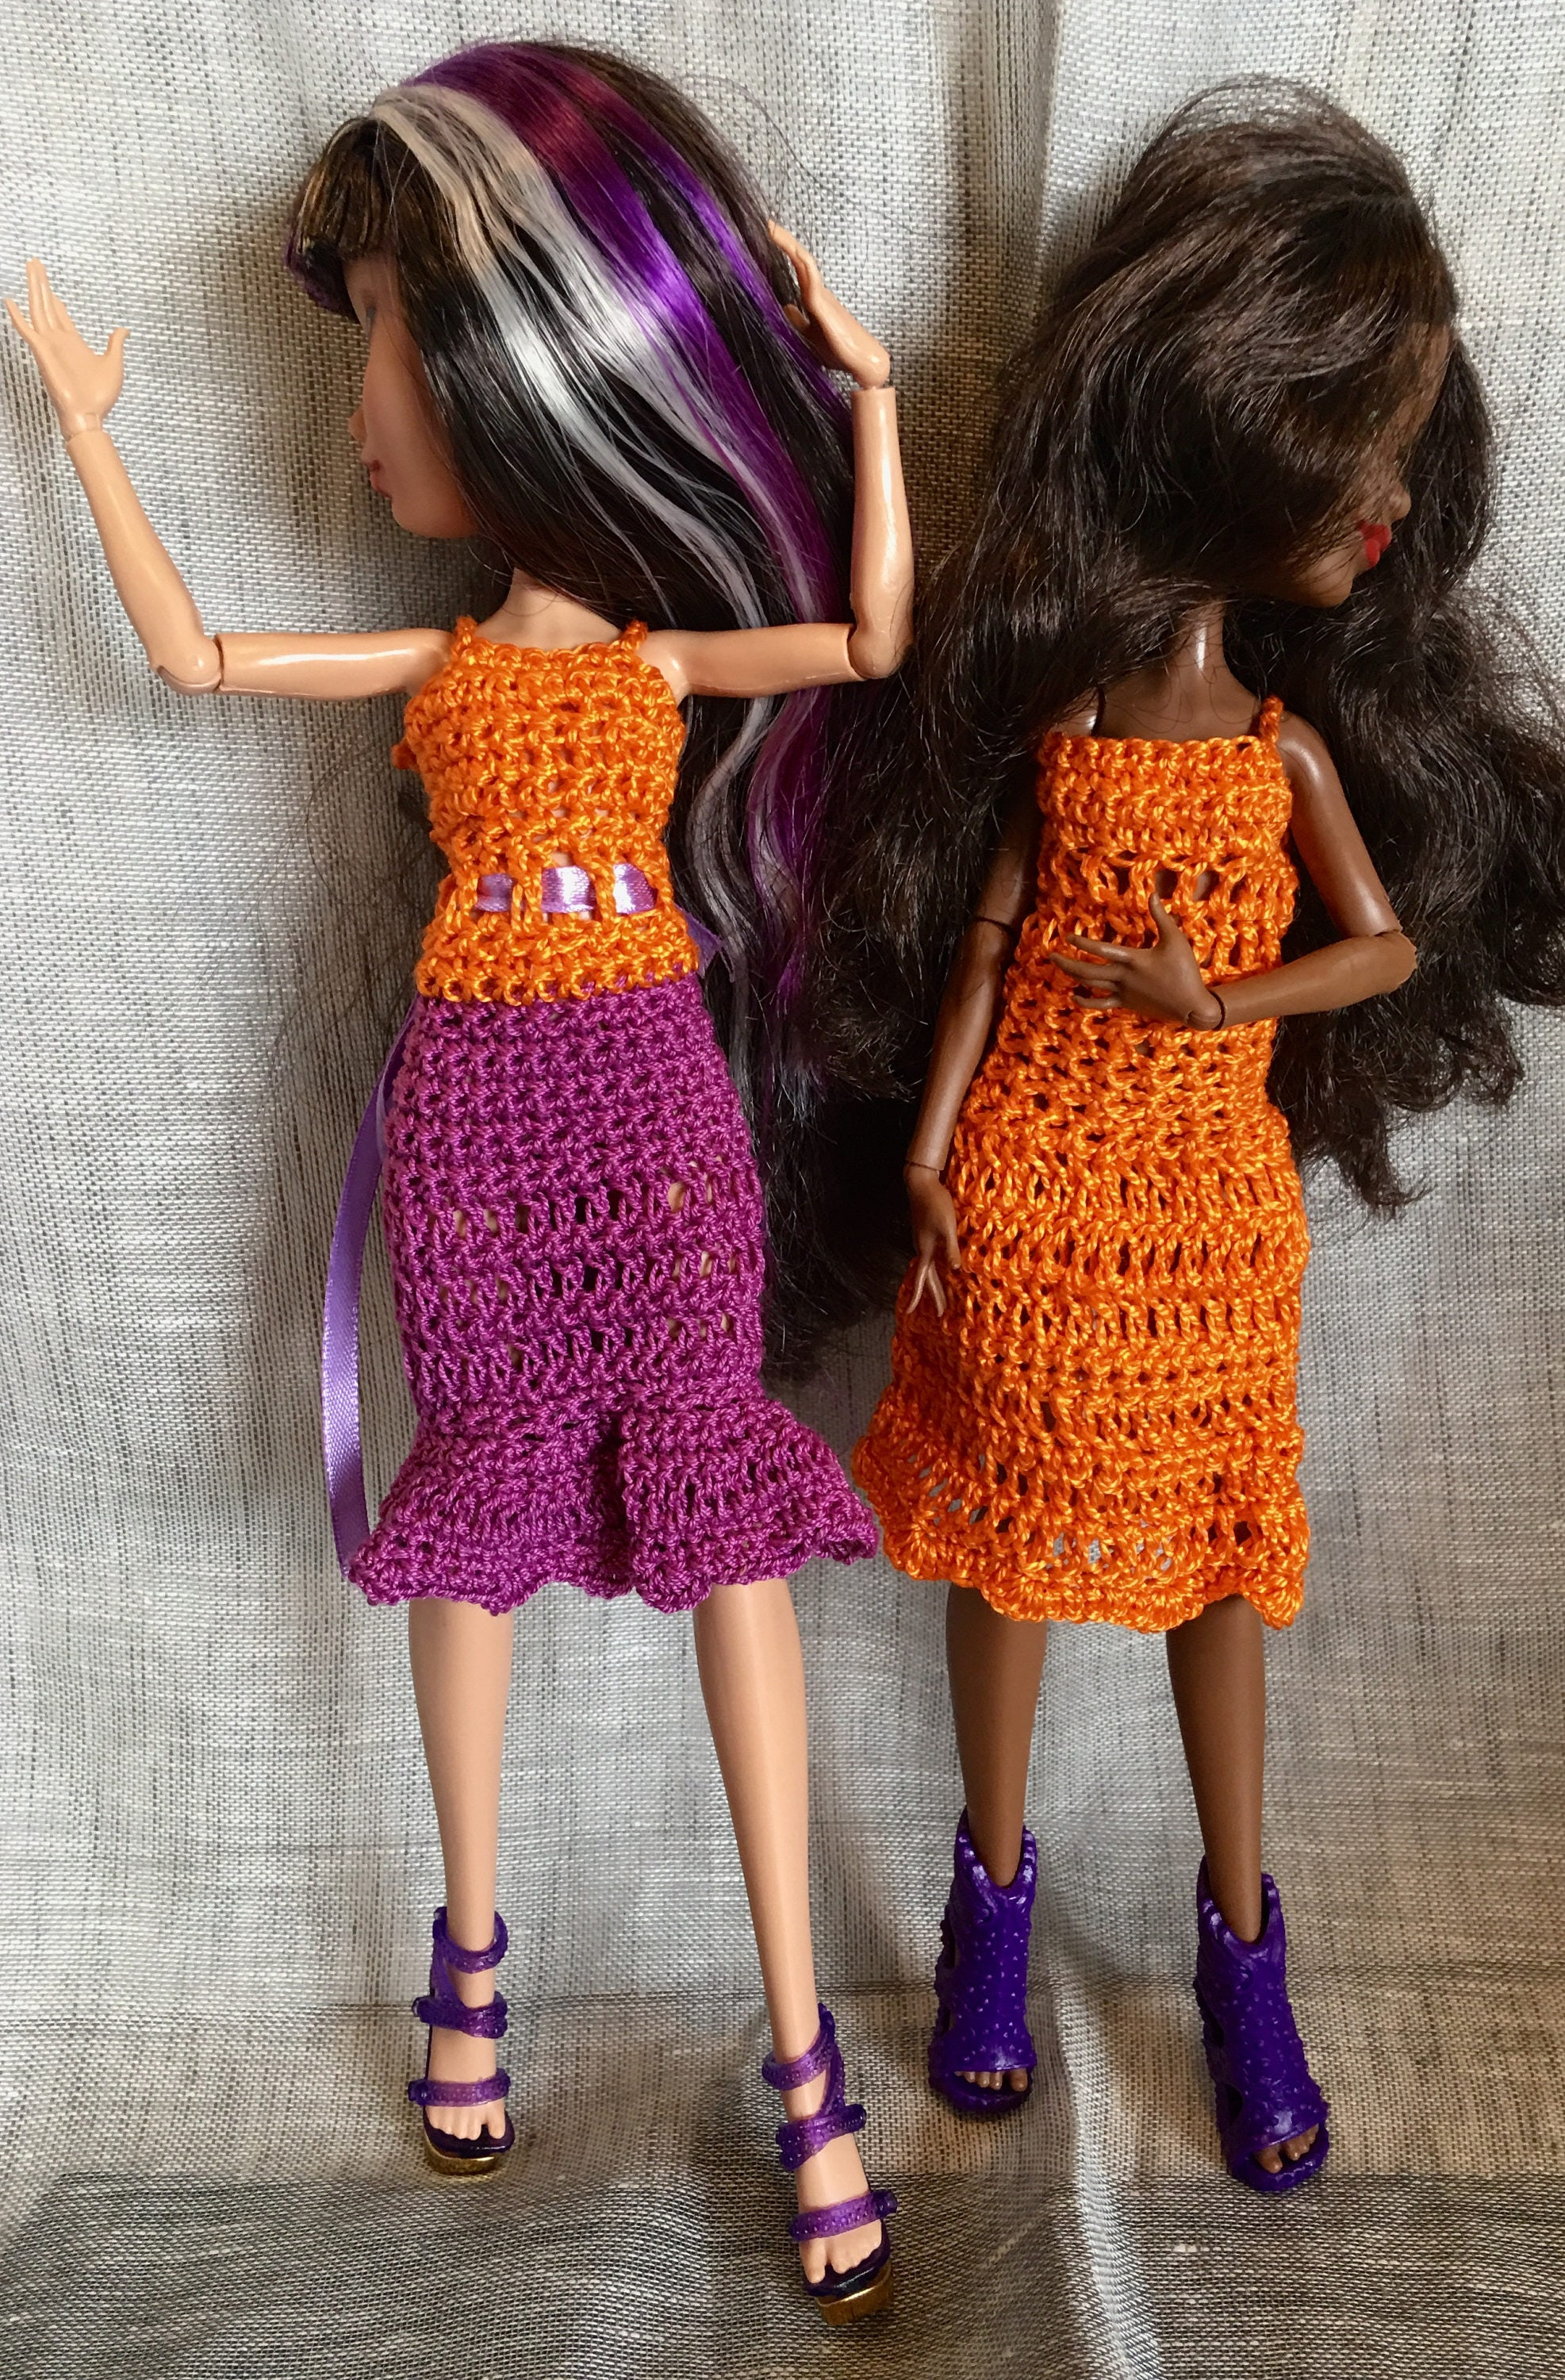 052211b2d5949 Monster Ever after High - Pullip - 2 dresses crochet